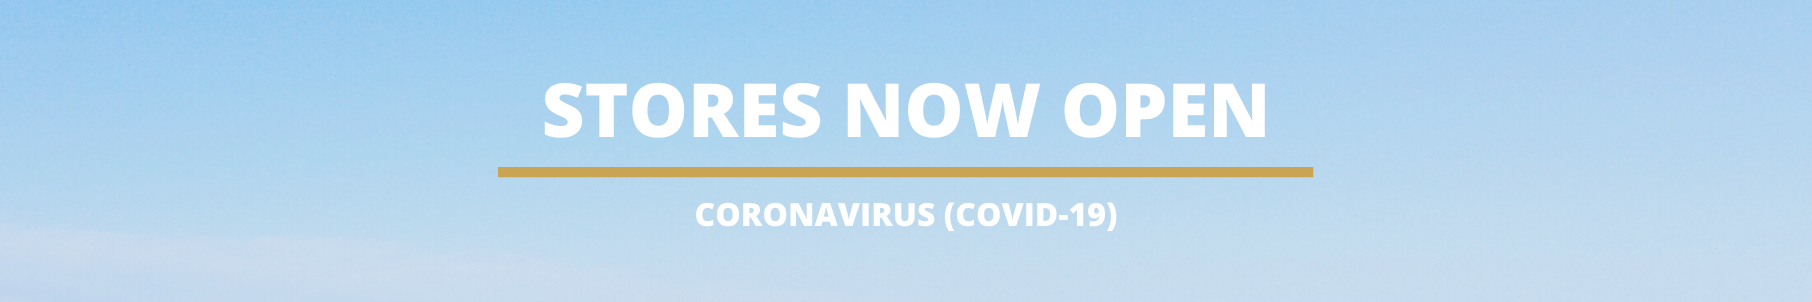 covid-stores-open-banner.png